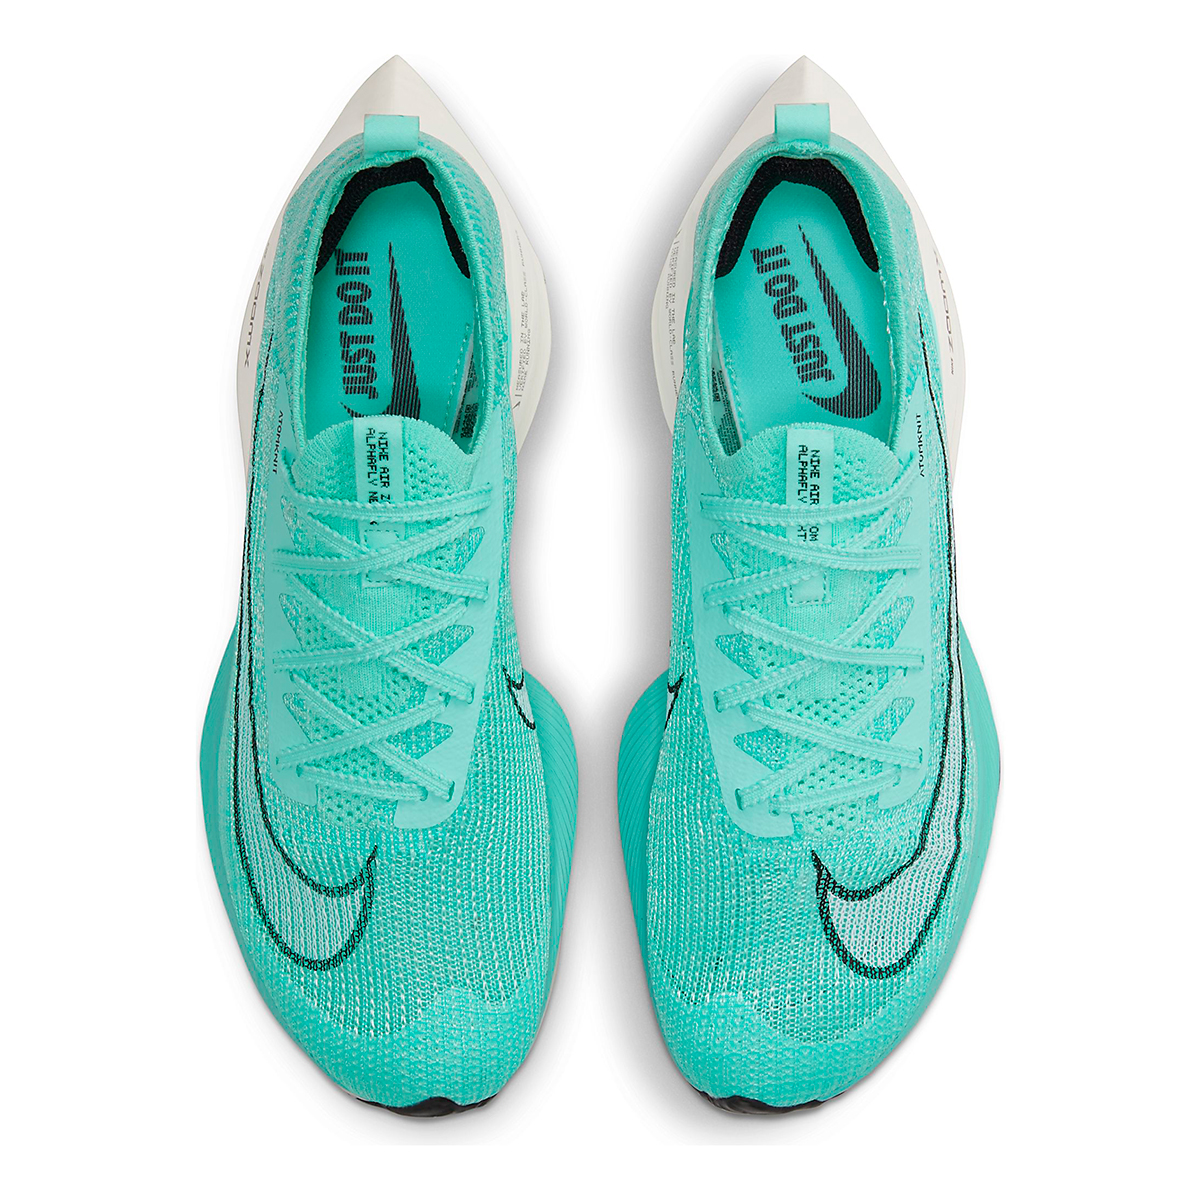 Men's Nike Air Zoom Alphafly Next% Running Shoe - Color: Hyper Turq/White-Black-Oracle Aqua - Size: 6 - Width: Regular, Hyper Turq/White-Black-Oracle Aqua, large, image 3